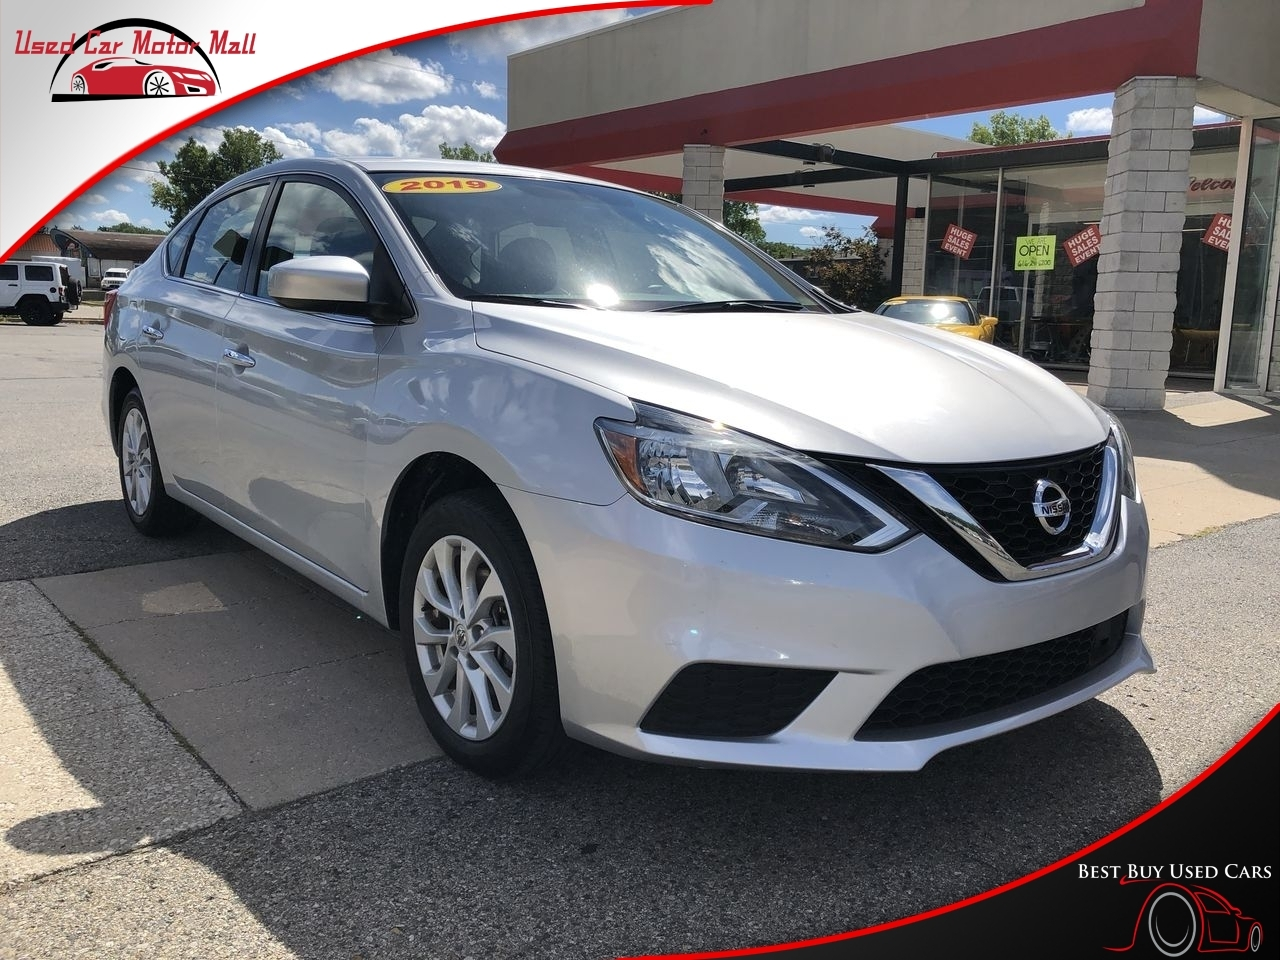 Used Silver 2019 Nissan Sentra Stk 367984 Best Buy Used Cars